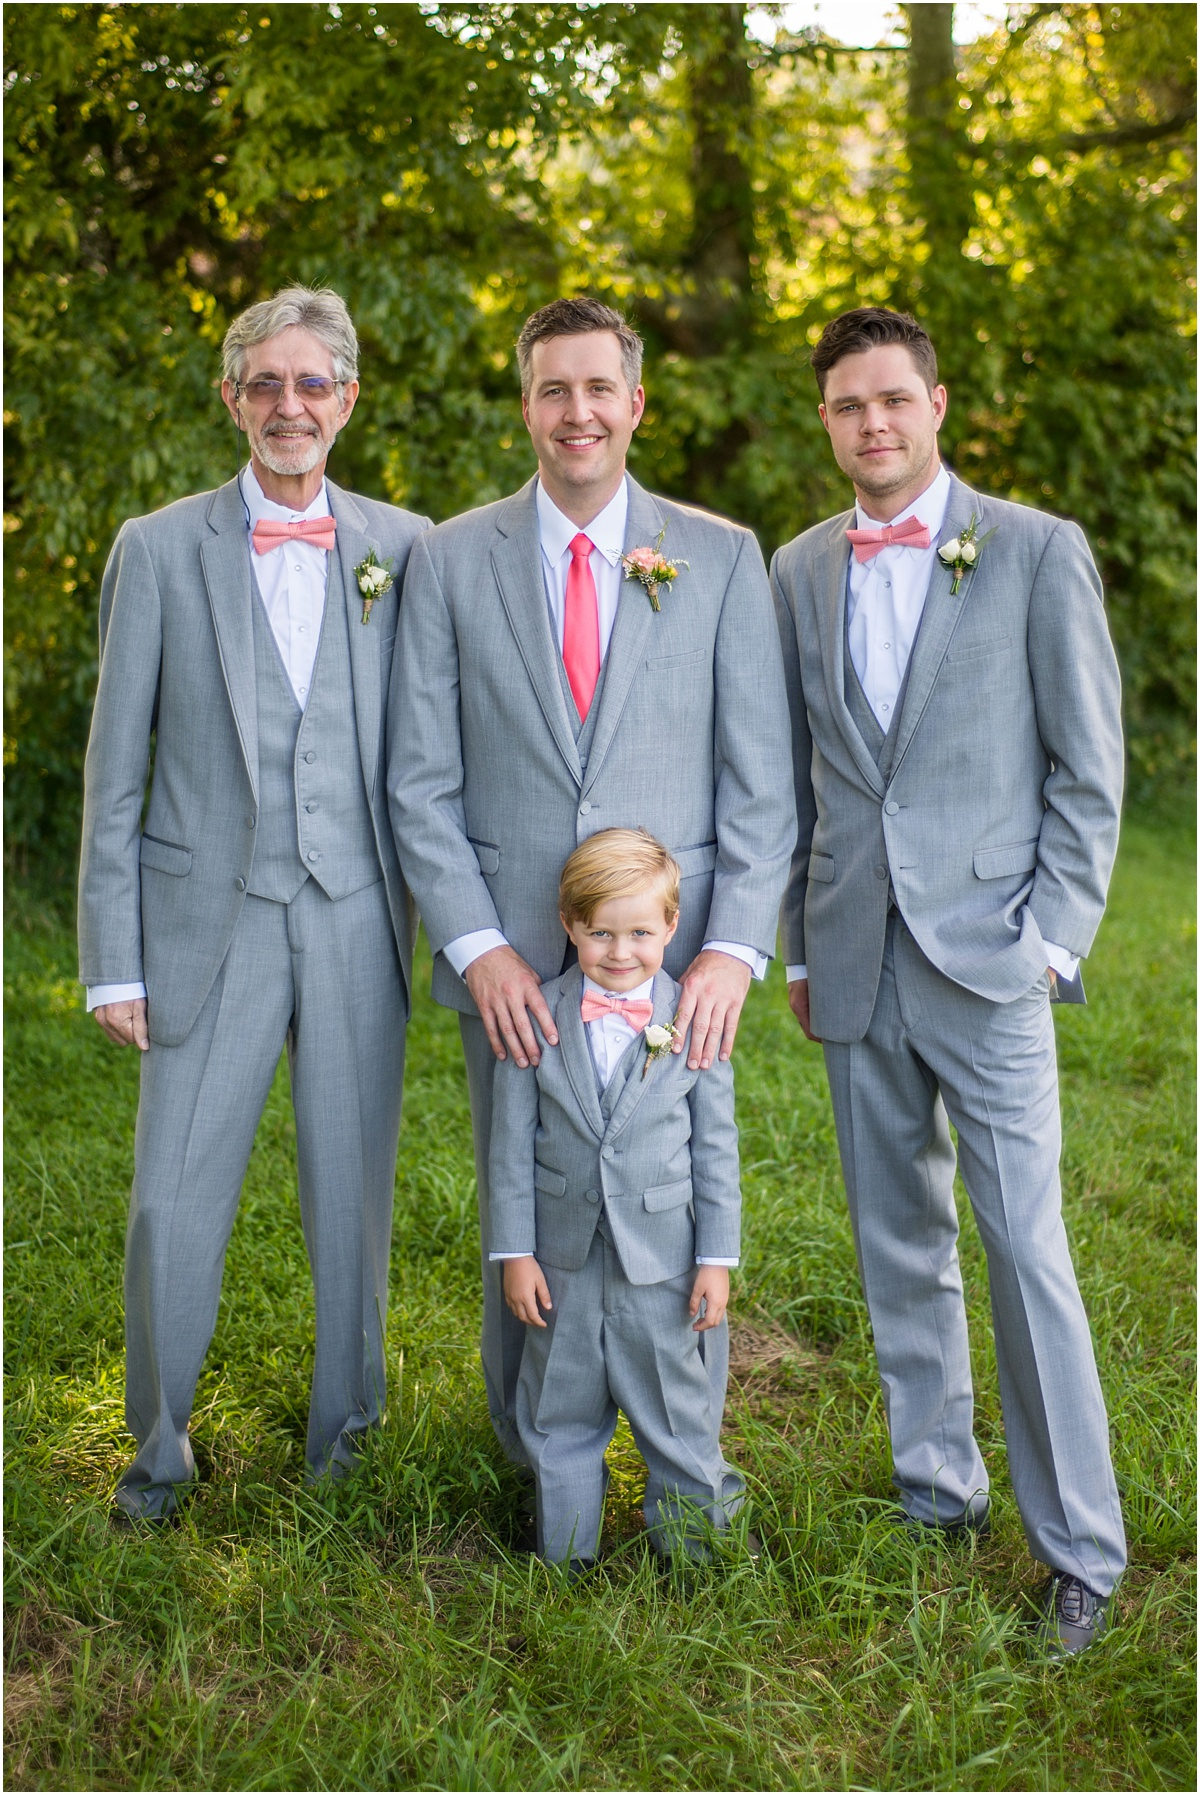 Greg Smit Photography Nashville wedding photographer Mint Springs Farm_0085